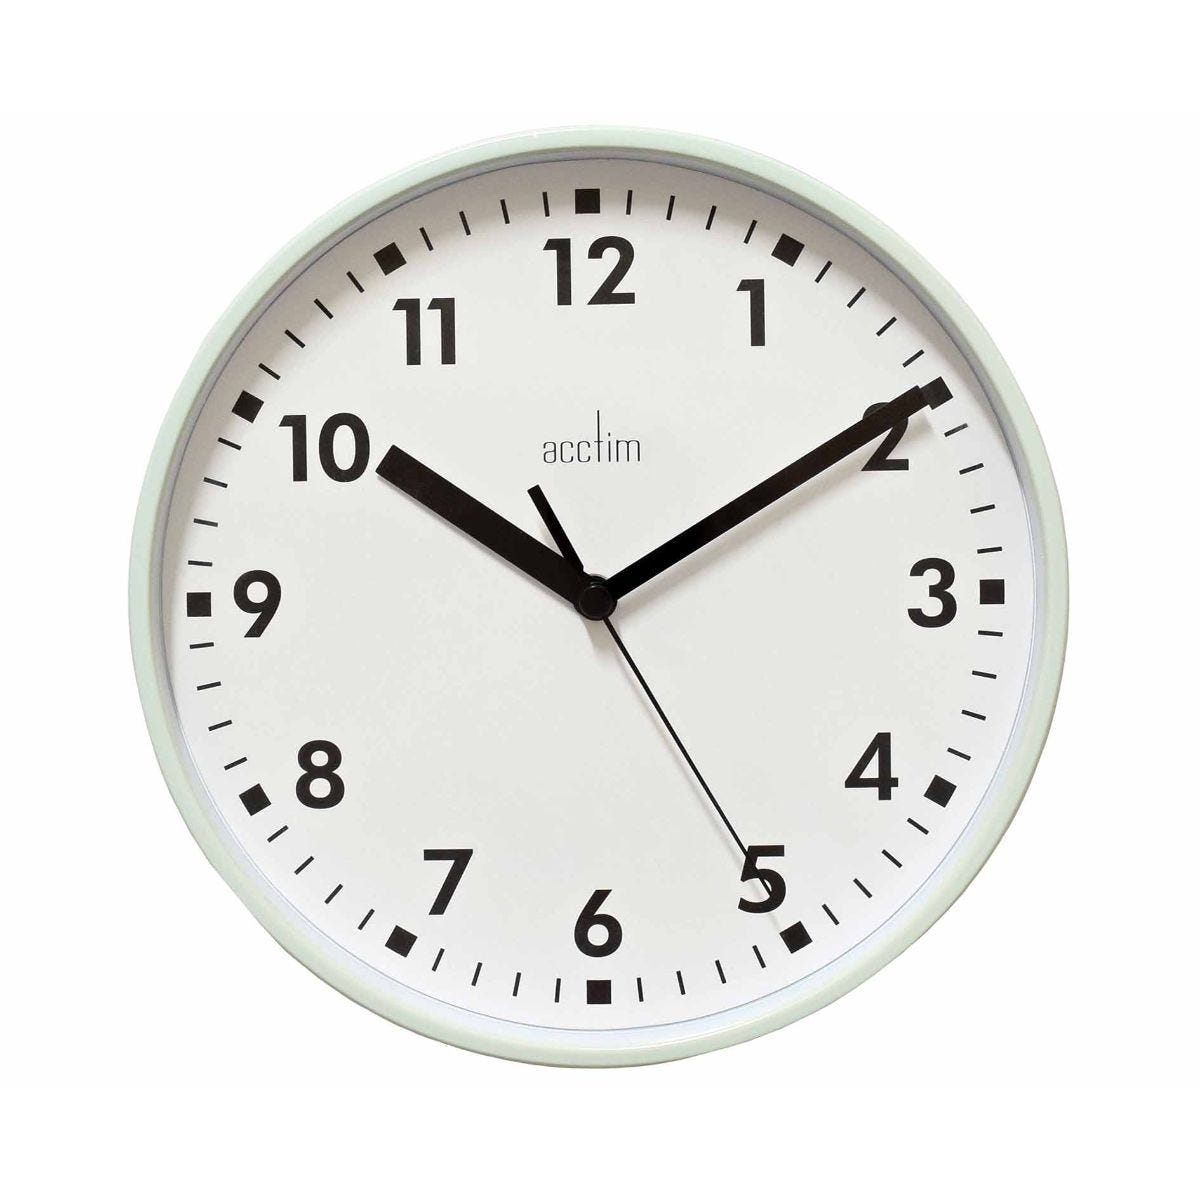 Image of Acctim Wickford Wall Clock, Mint